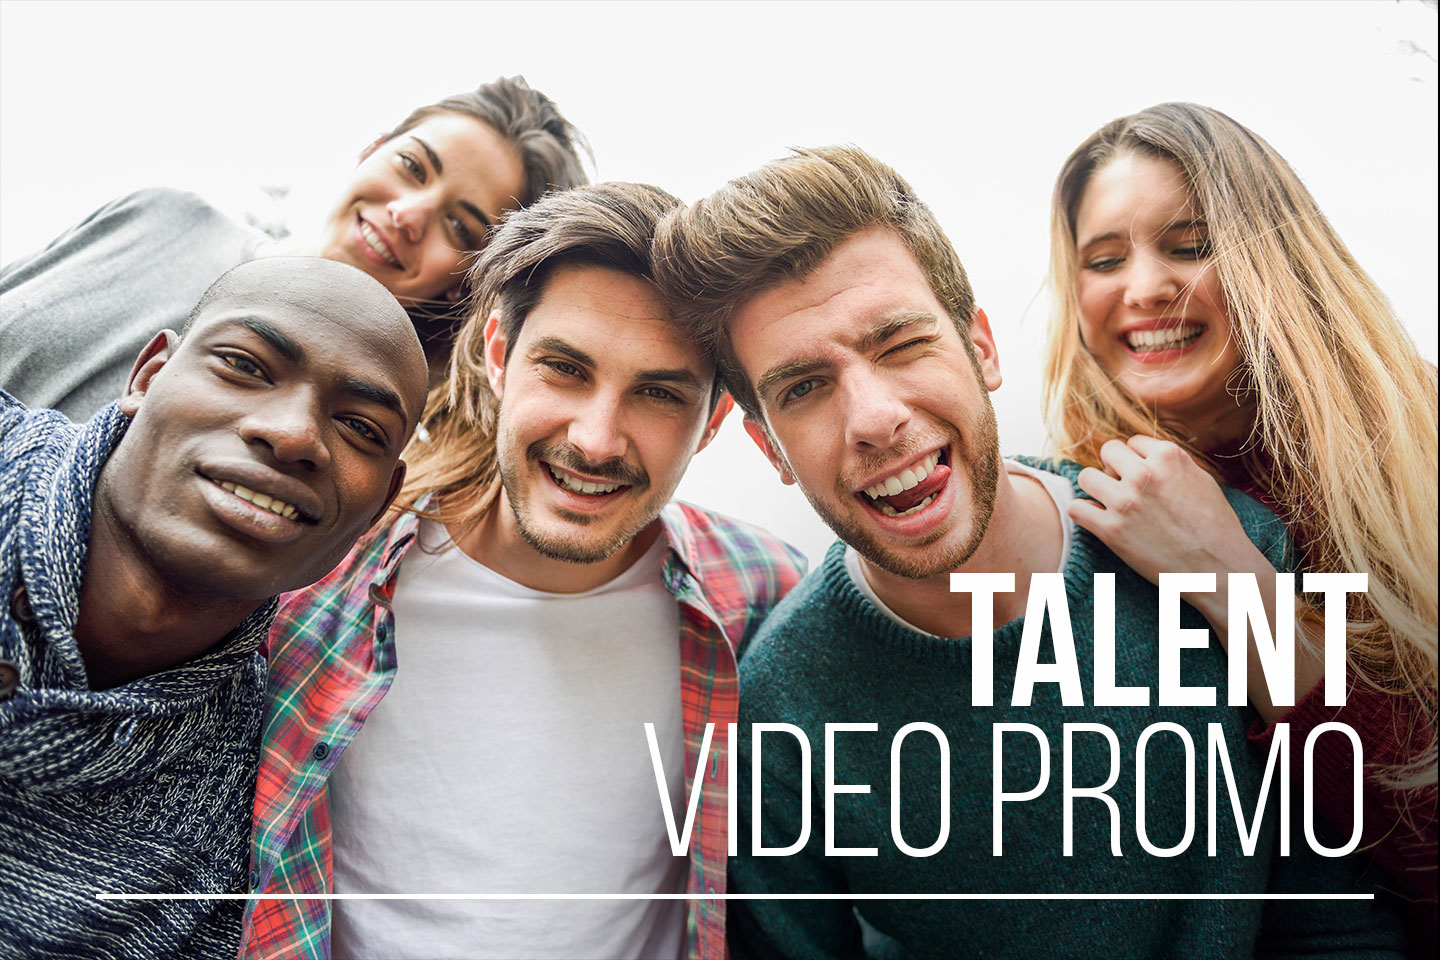 Talent Video Klip dan Video Promo